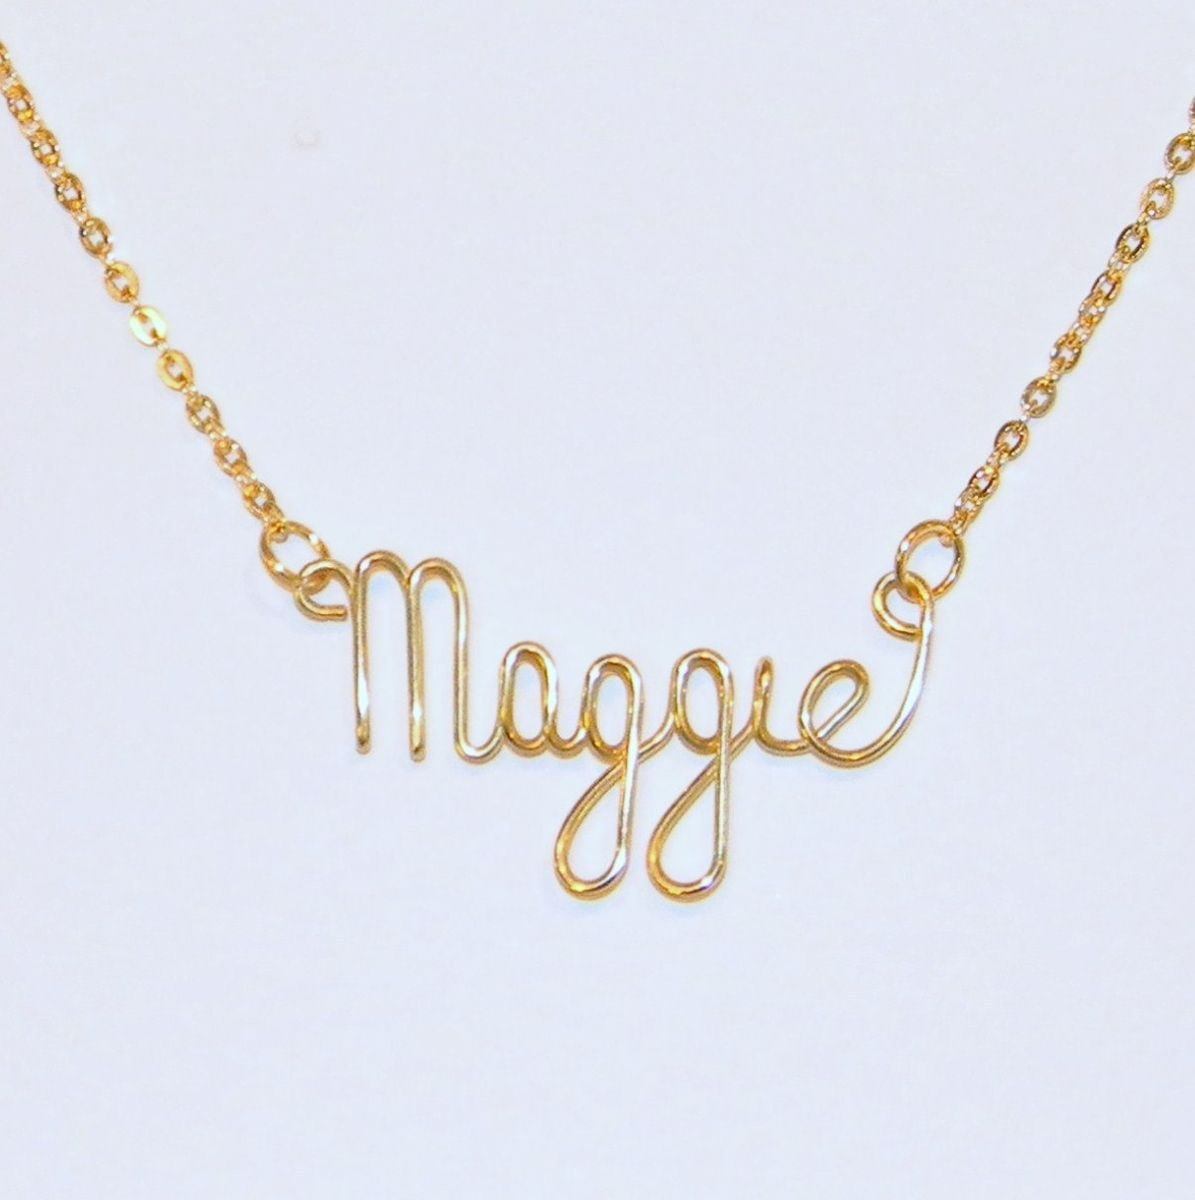 handmade 24k heavy gold plated wire personalized name